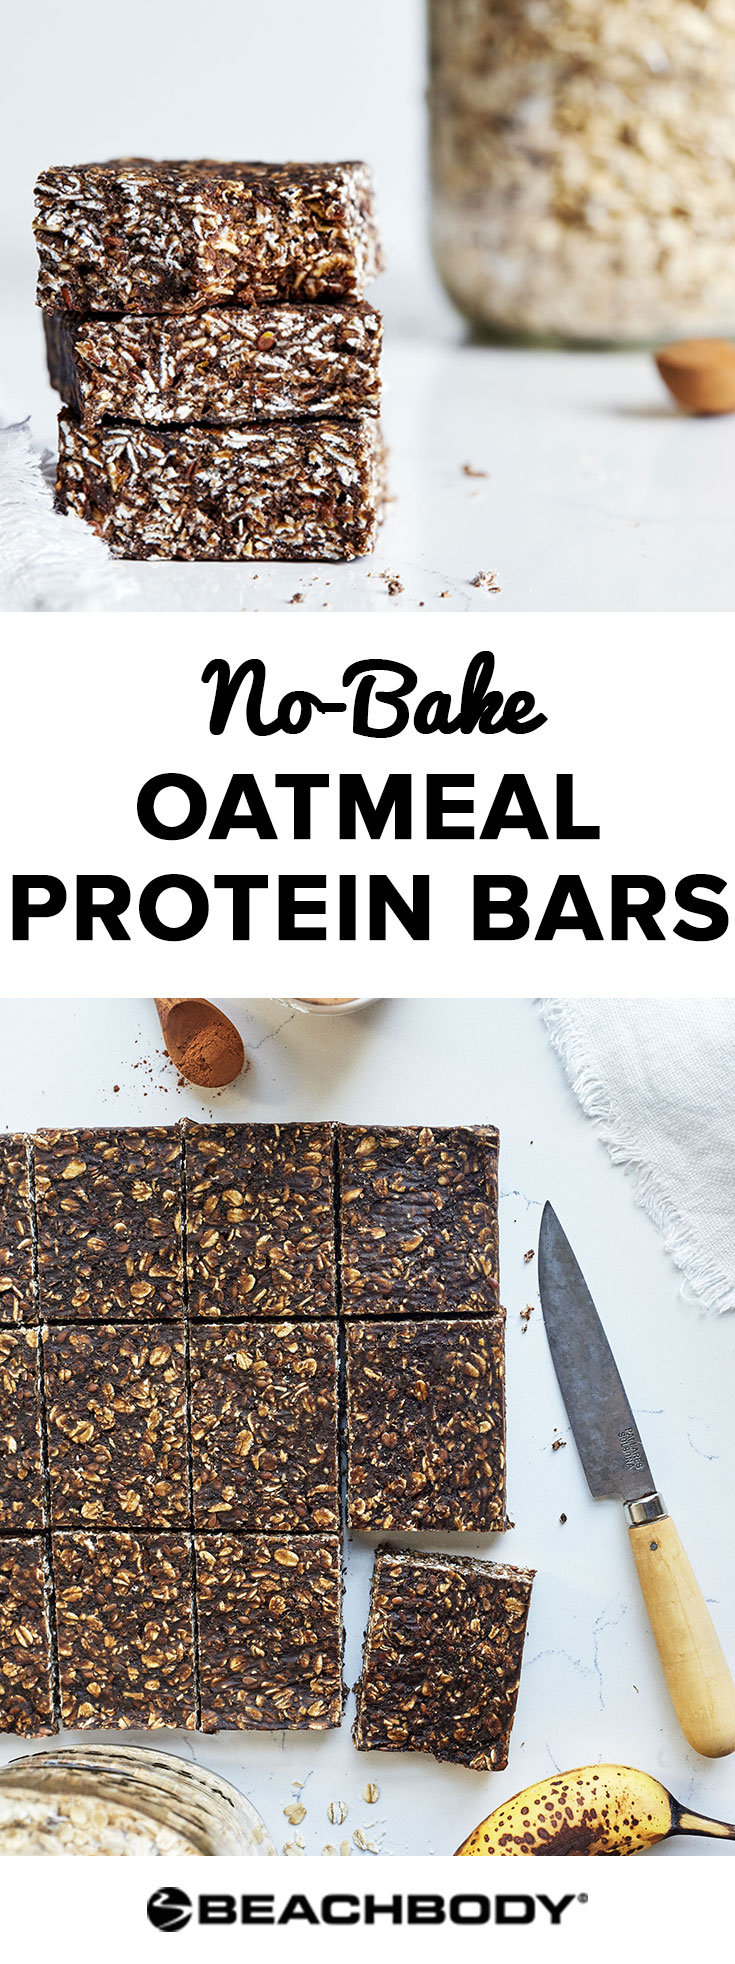 This No-Bake Oatmeal Protein Bars recipe is easy, delicious, and doesn't require any cooking.